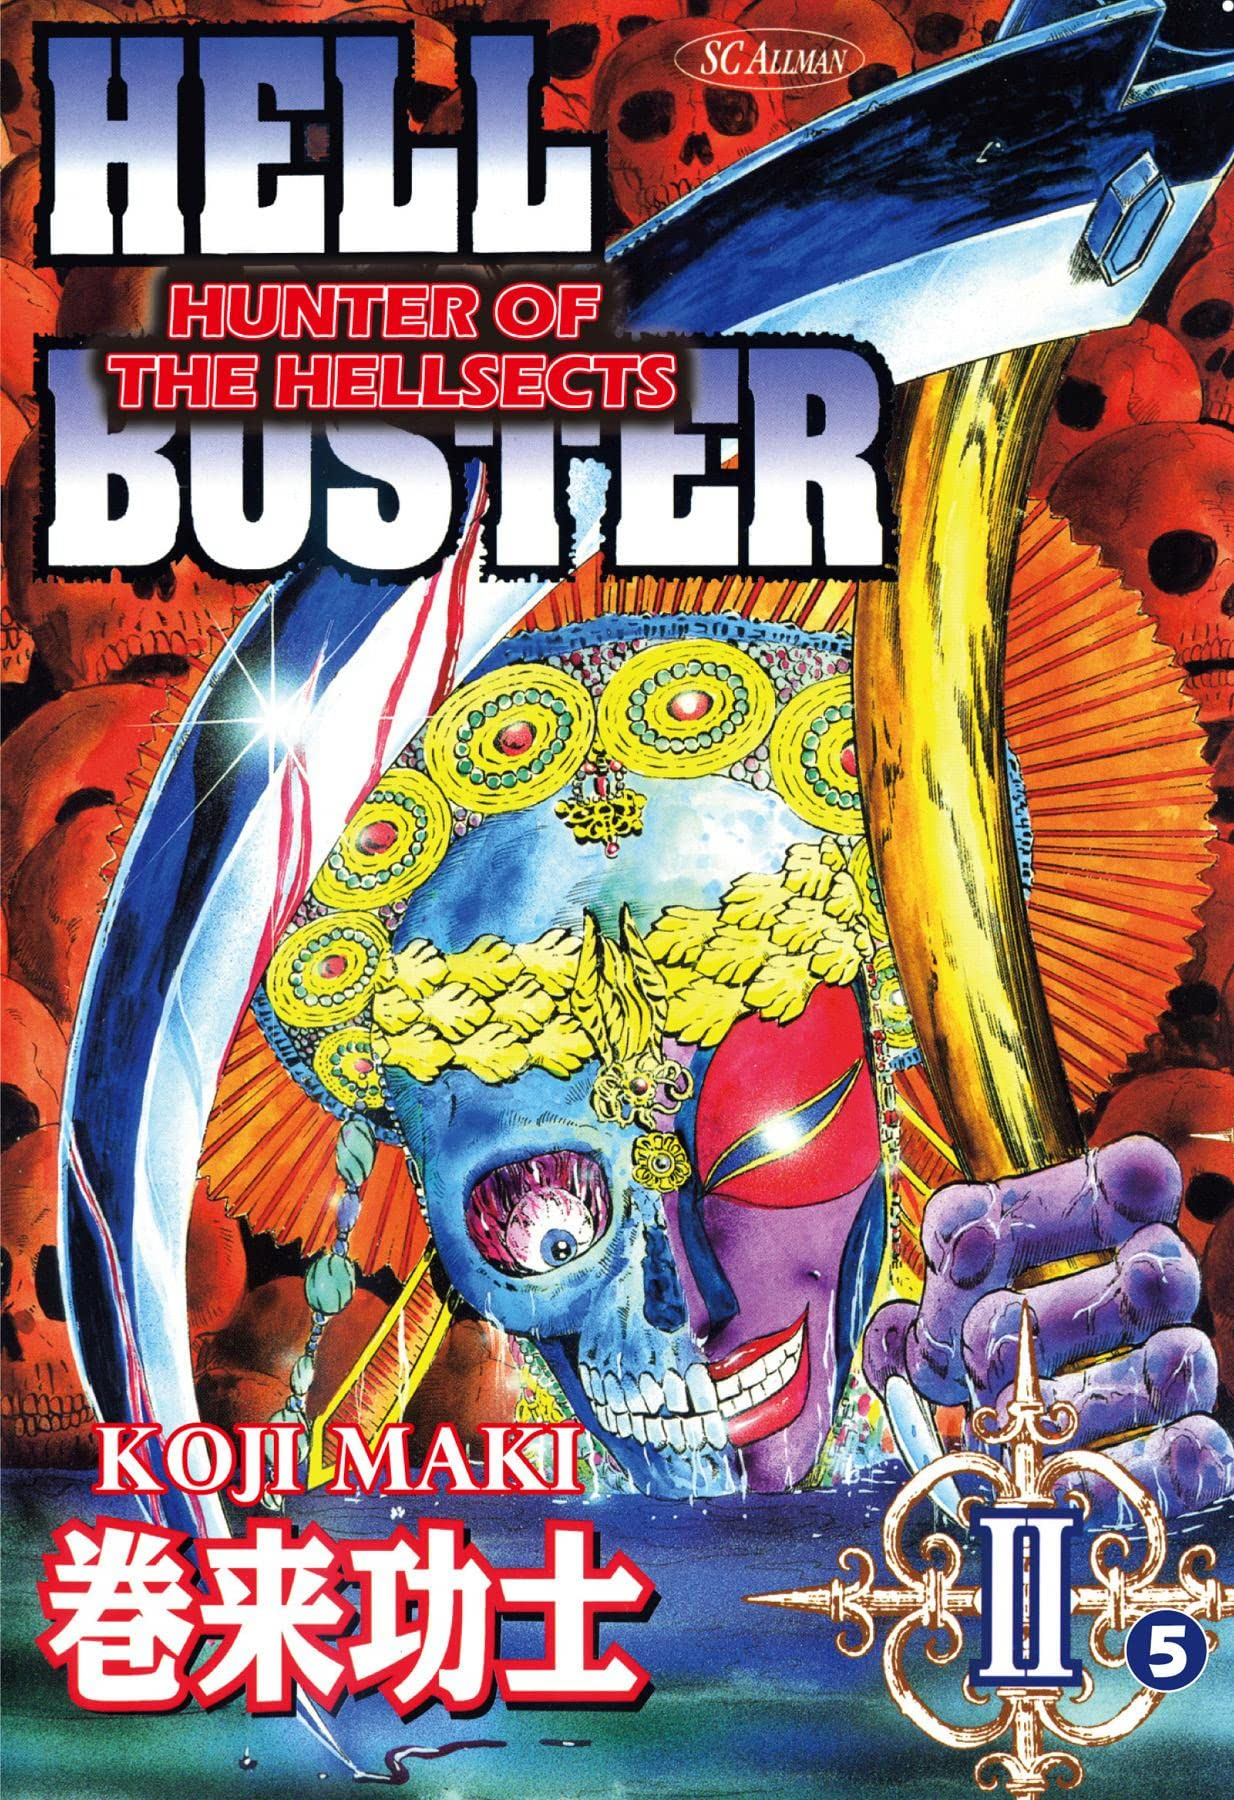 HELL BUSTER HUNTER OF THE HELLSECTS #12